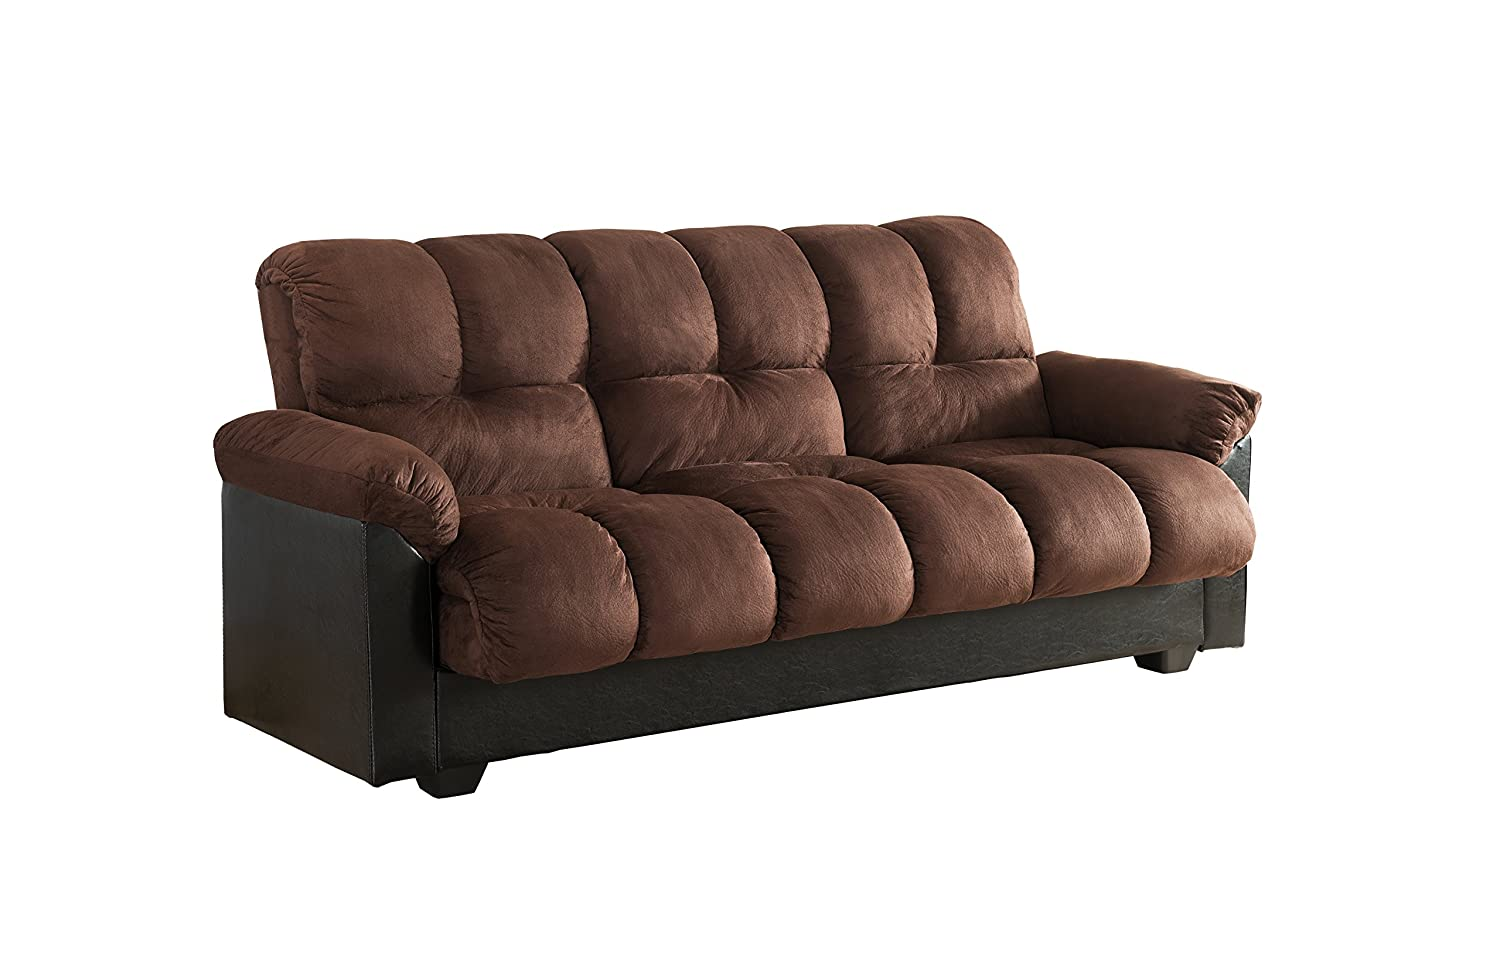 Sofa Bed Eternal Most Comfortable Futon Sofa Bed Click